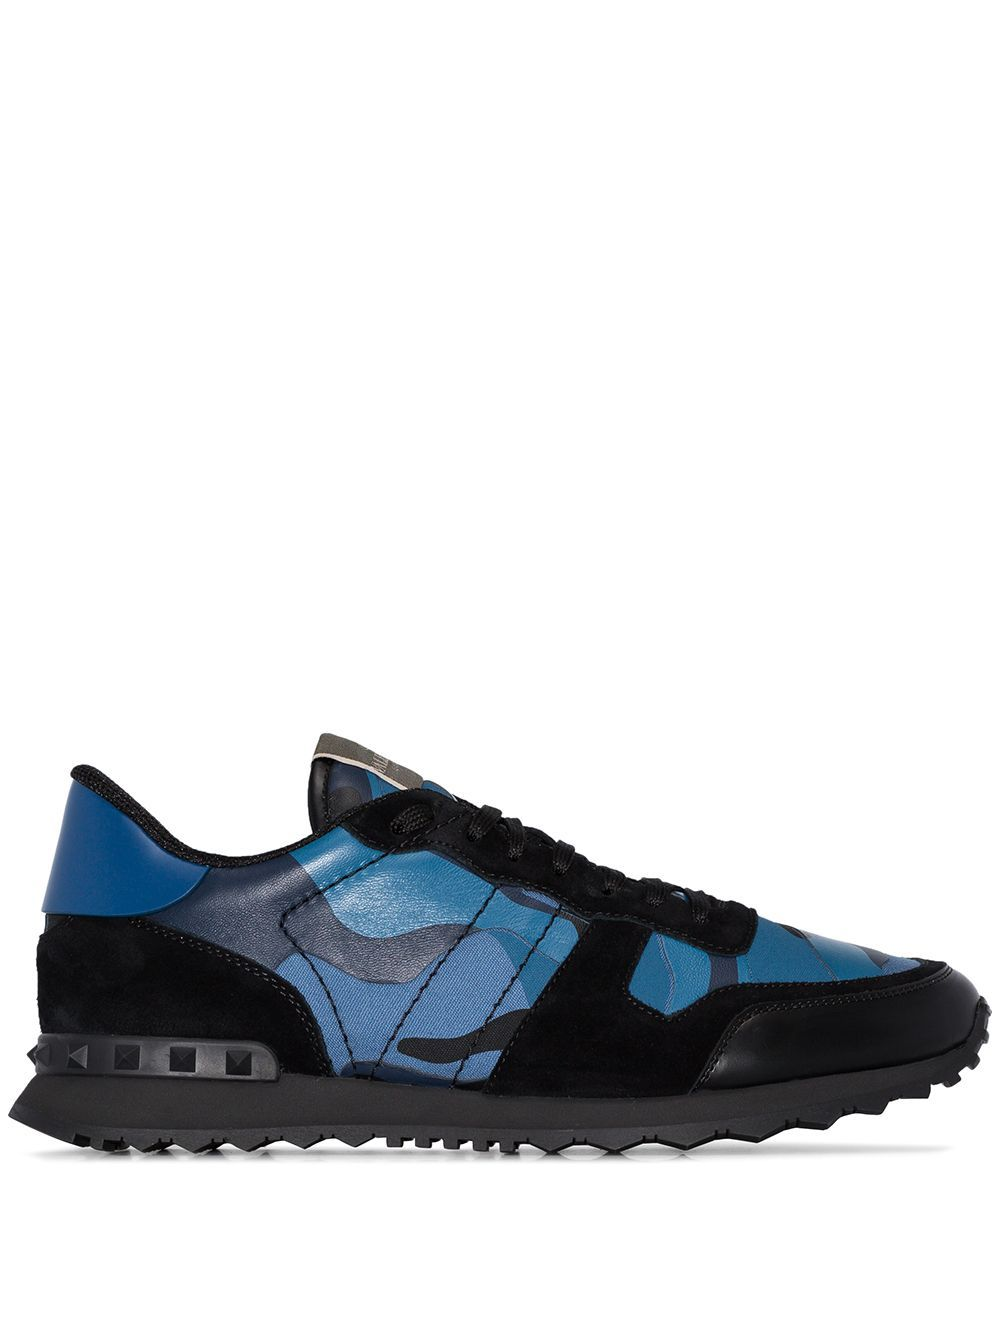 Valentino VALENTINO GARAVANI MEN'S BLUE LEATHER SNEAKERS